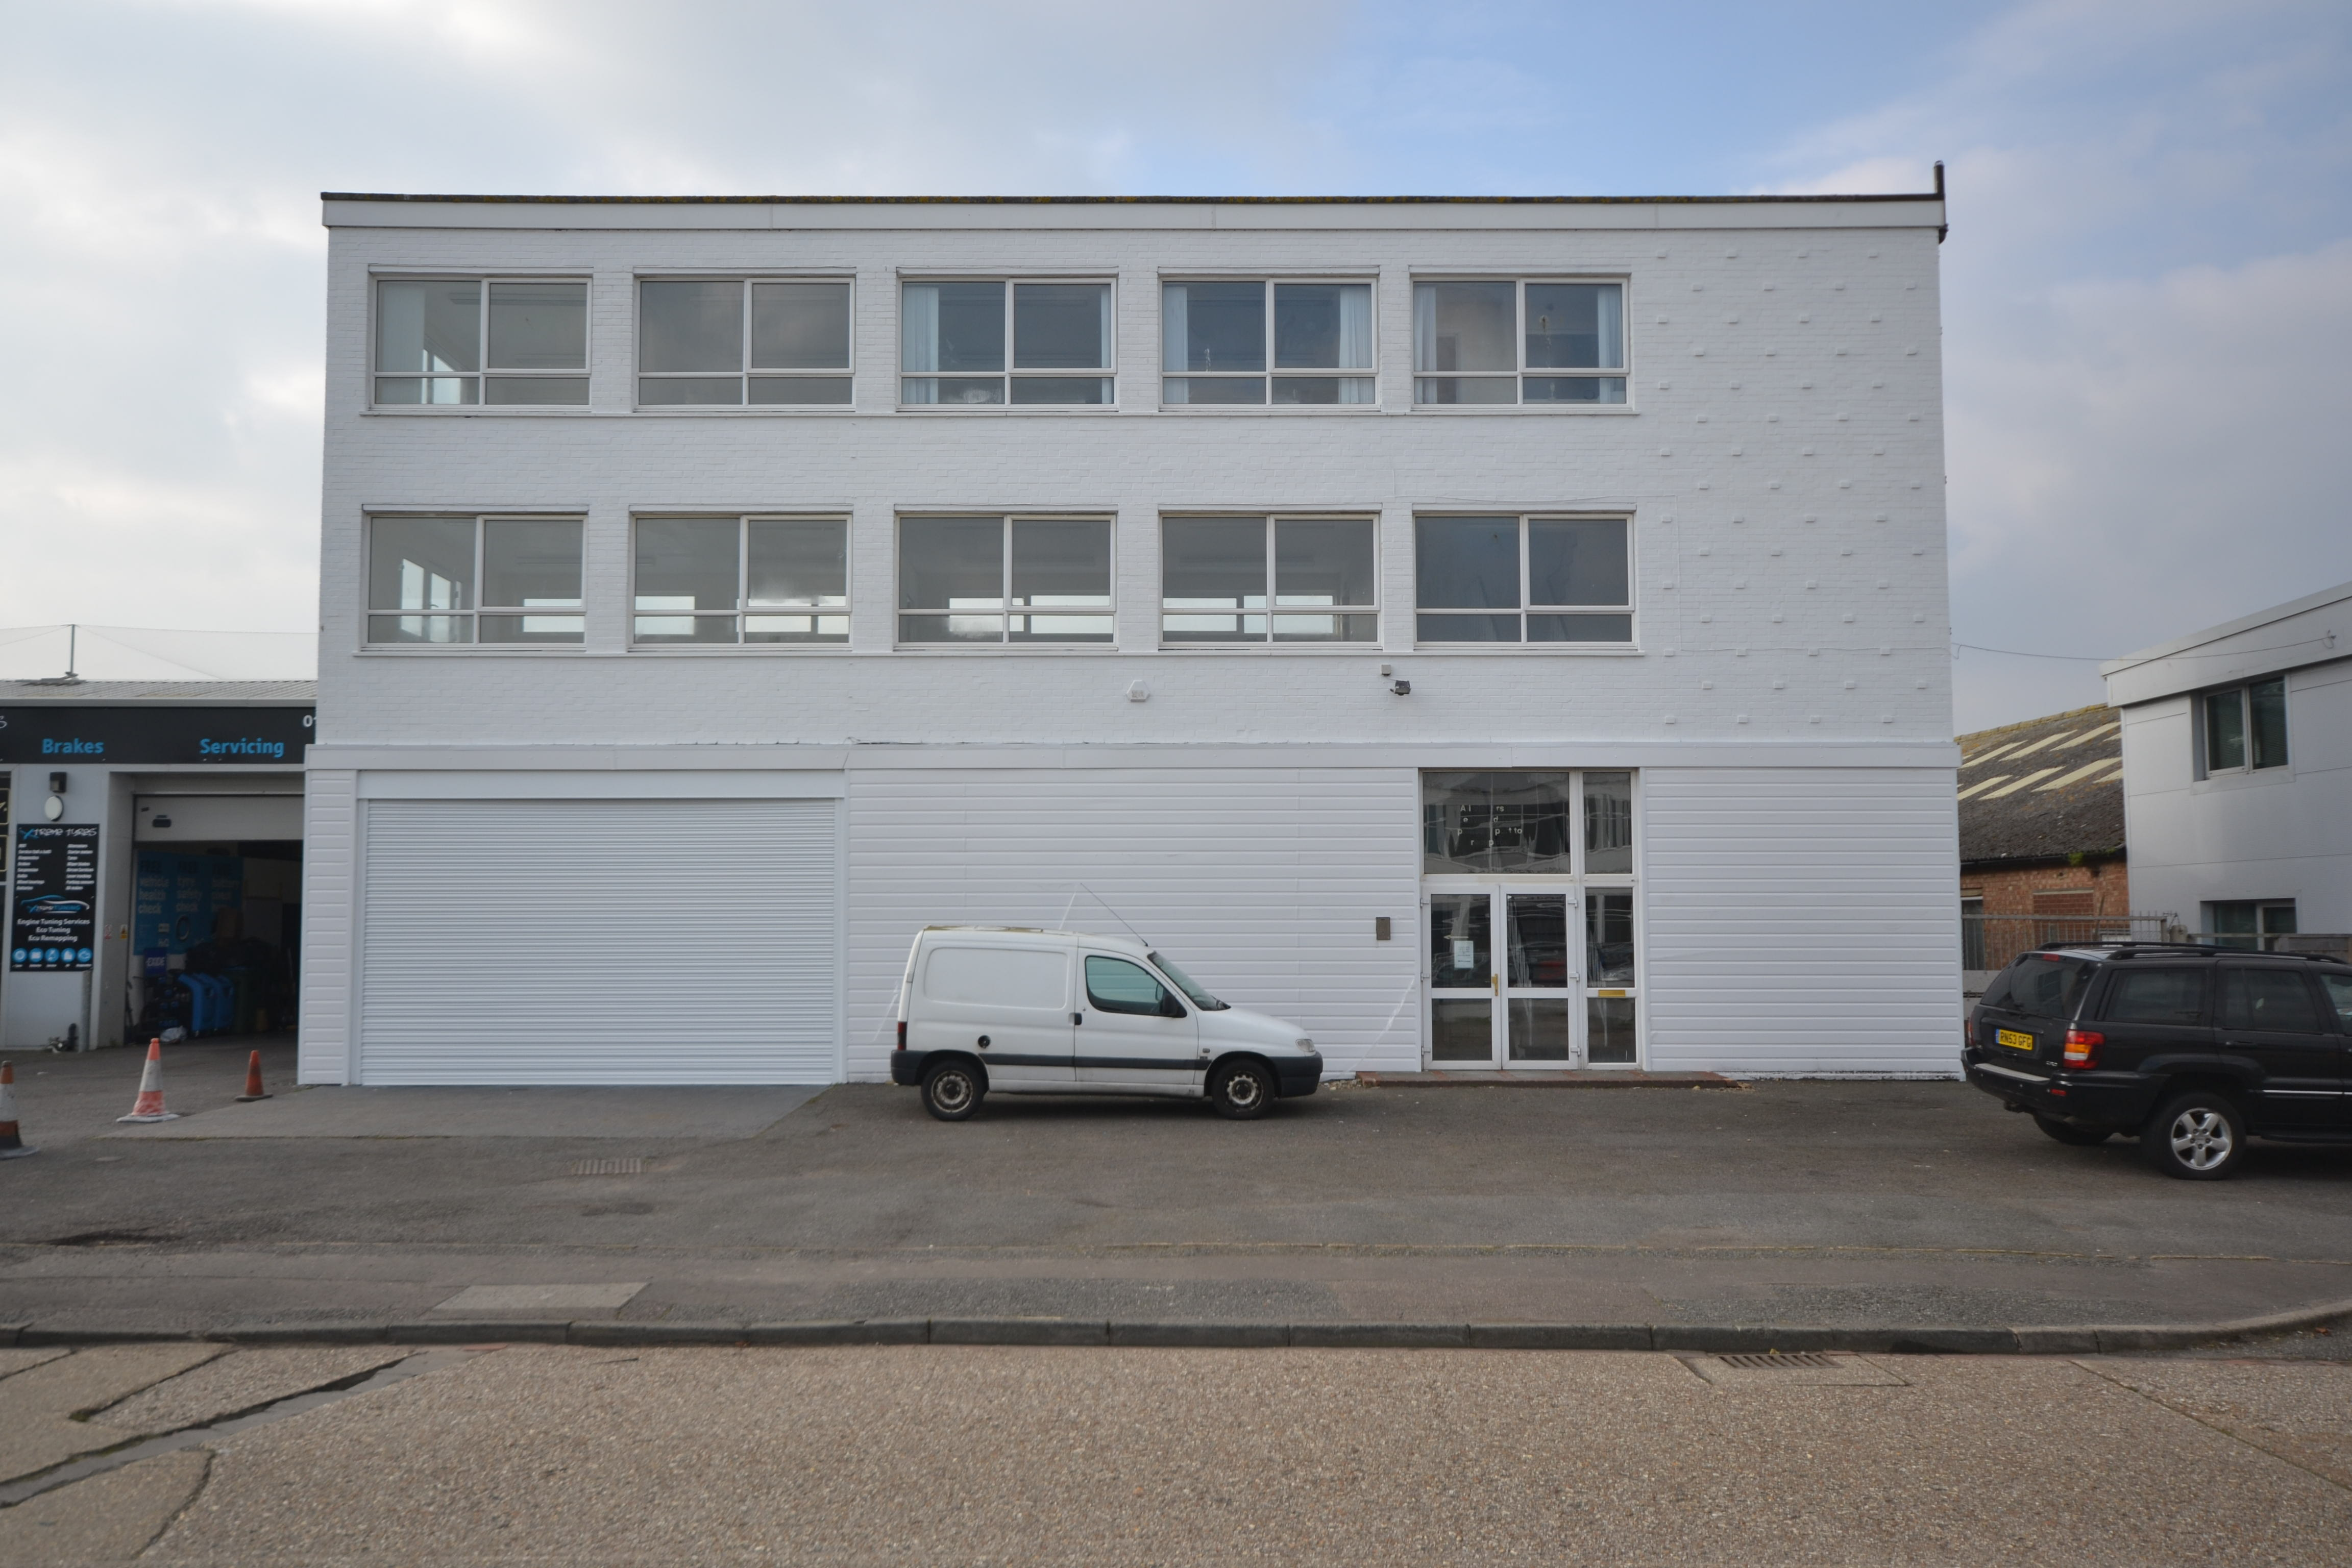 0 bed Distribution Warehouse for rent in Rustington. From Henry Adams Commercial